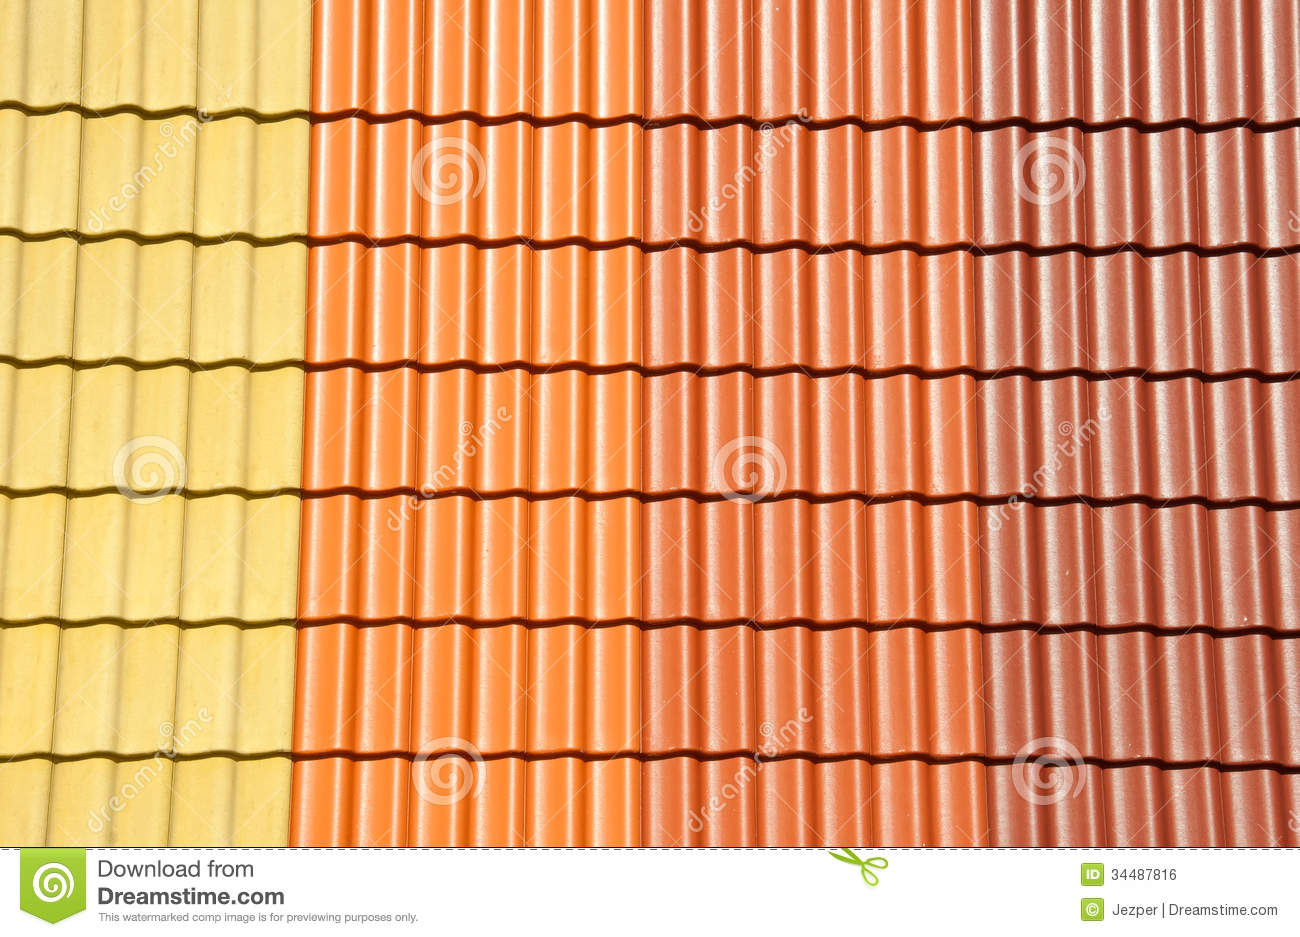 Roof tiles colors stock photo image of close design Different design and colors of tiles